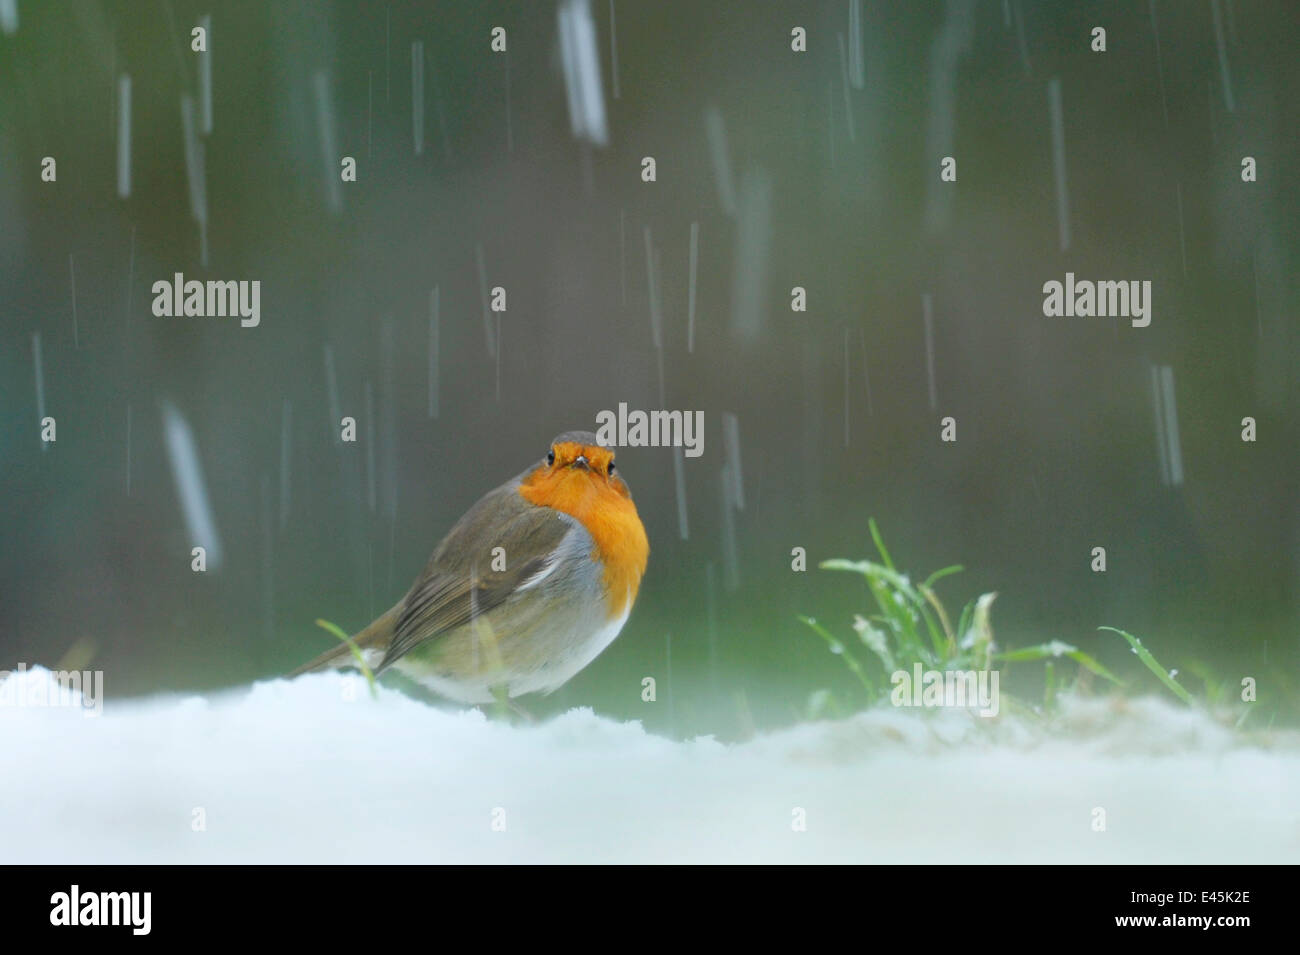 European Robin (Erithacus rubecula) in snow, Wales, UK - Stock Image